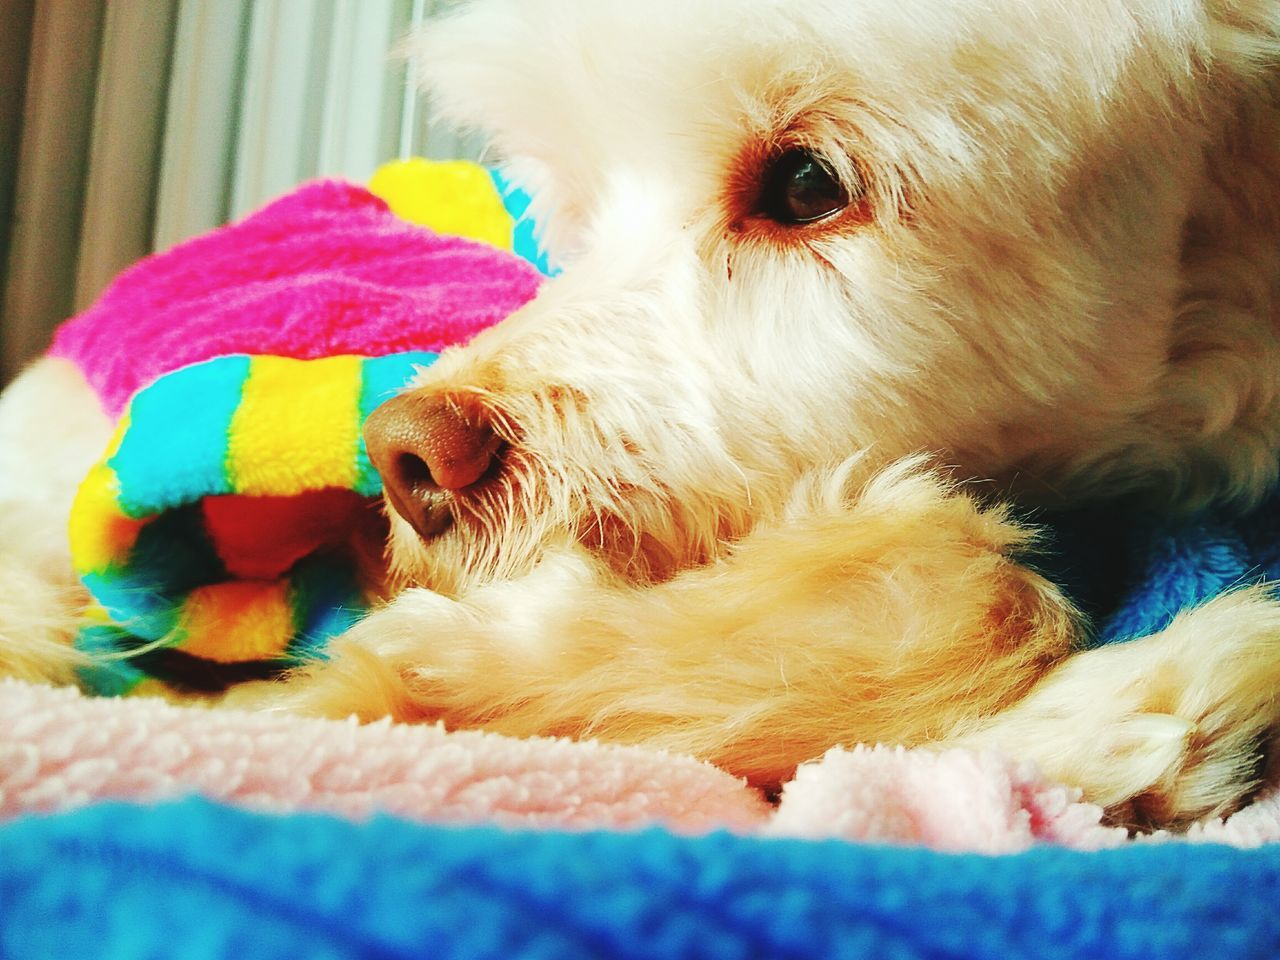 Thinking About Her Dogs Of EyeEm Dog We Love Dogs Dogs Animal Animal Themes Domestic Animals Domestic Dog Smartphonephotography Close-up Dog Eye Colorful Life Dogslife Dog Fashion Fashion Protect Animals Domestic Dogs Lifestyles Domestic Life Indoors  Animals Pets Smartphone Photography Indoors